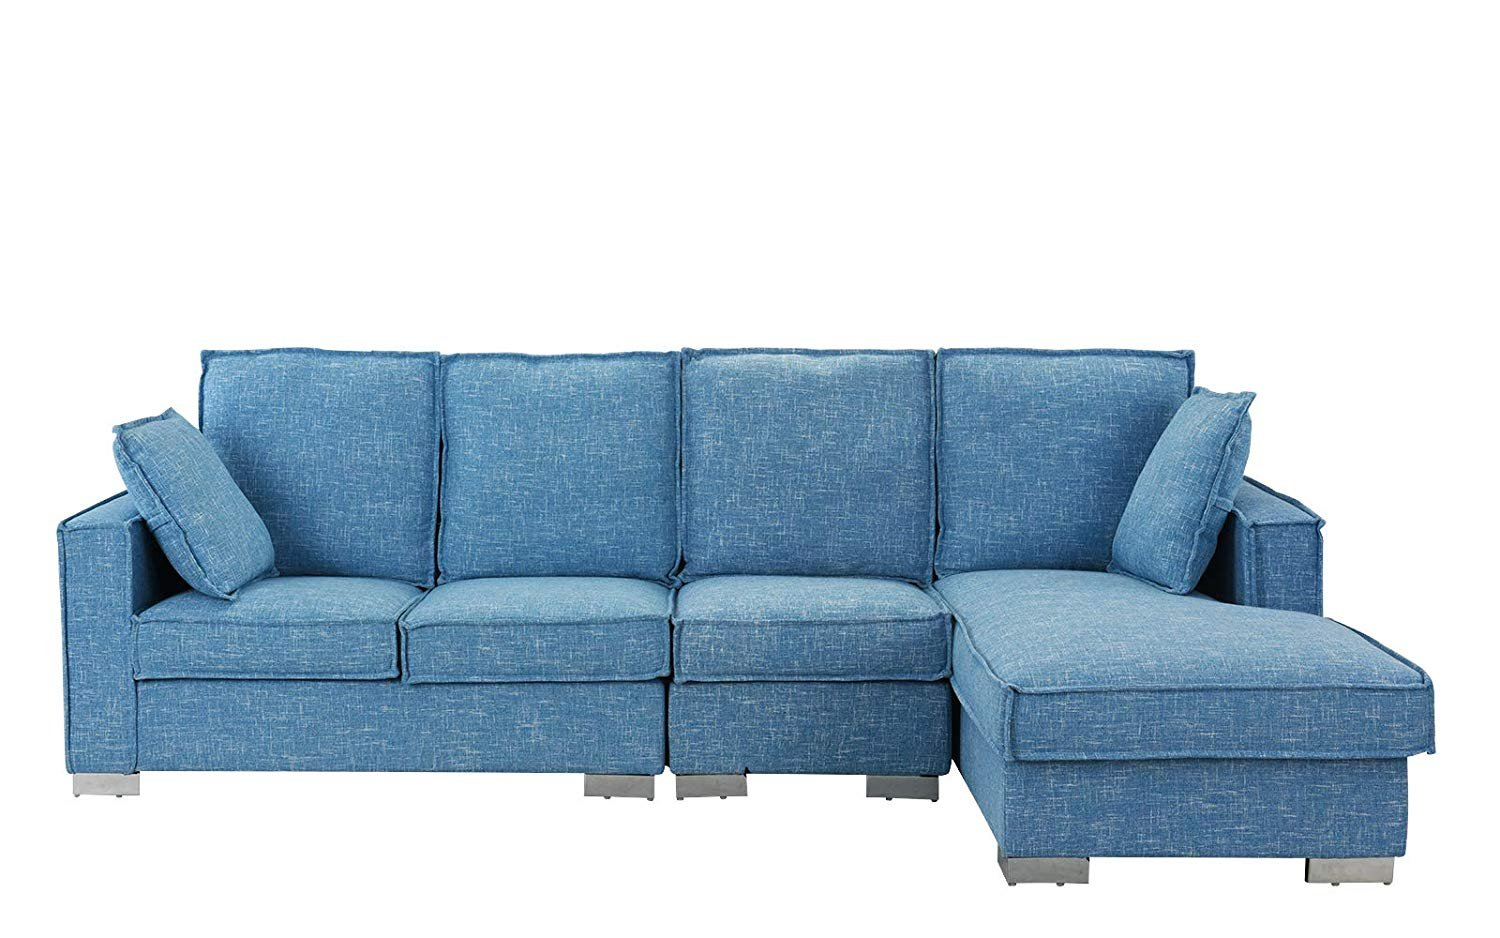 L Sofa Details About Modern Living Room Large Sectional Sofa L Shape Couch With Pillows Light Blue